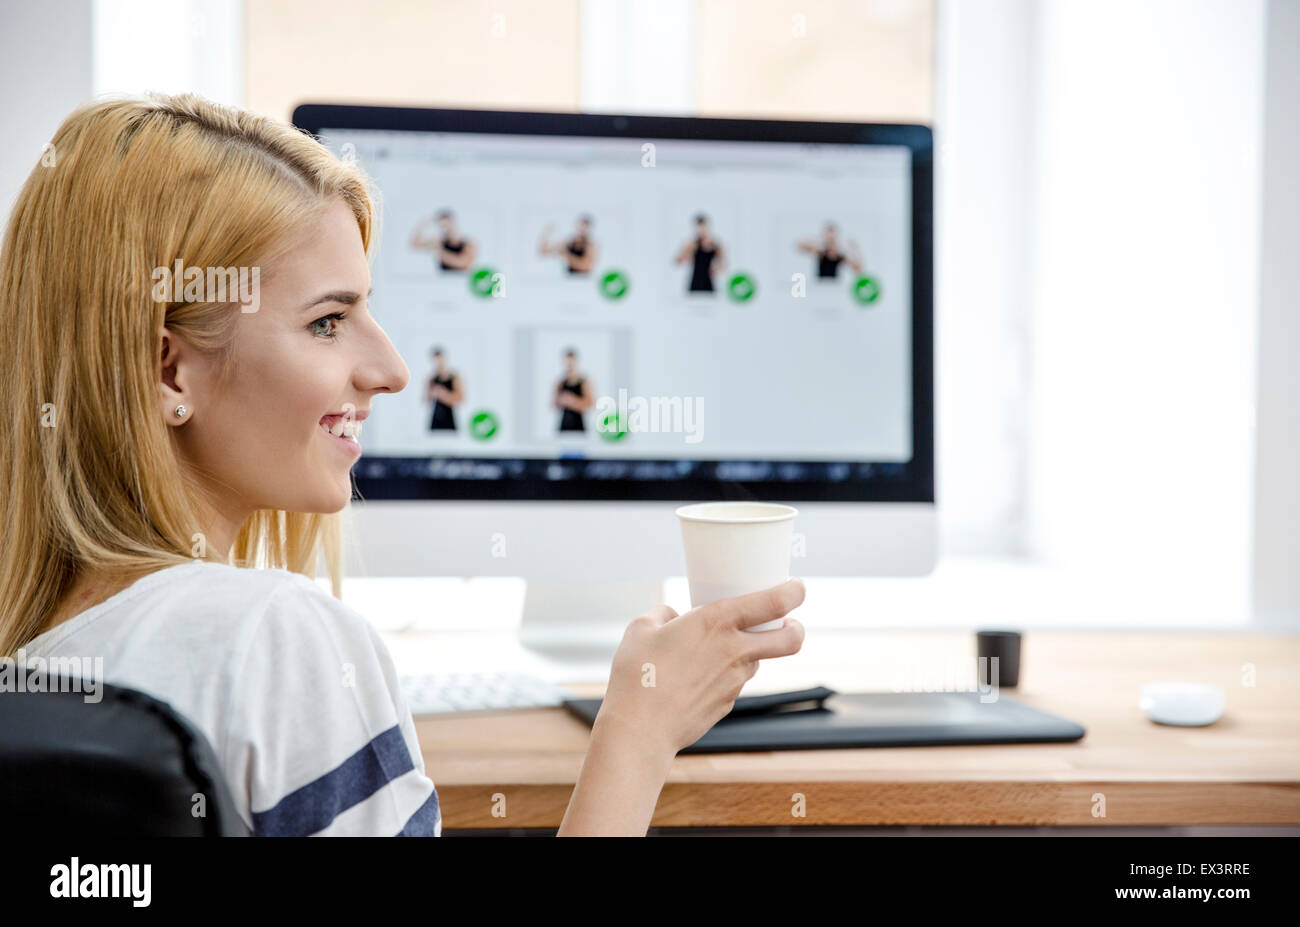 Happpy young woman sitting at the table in office and holding cup with coffee - Stock Image